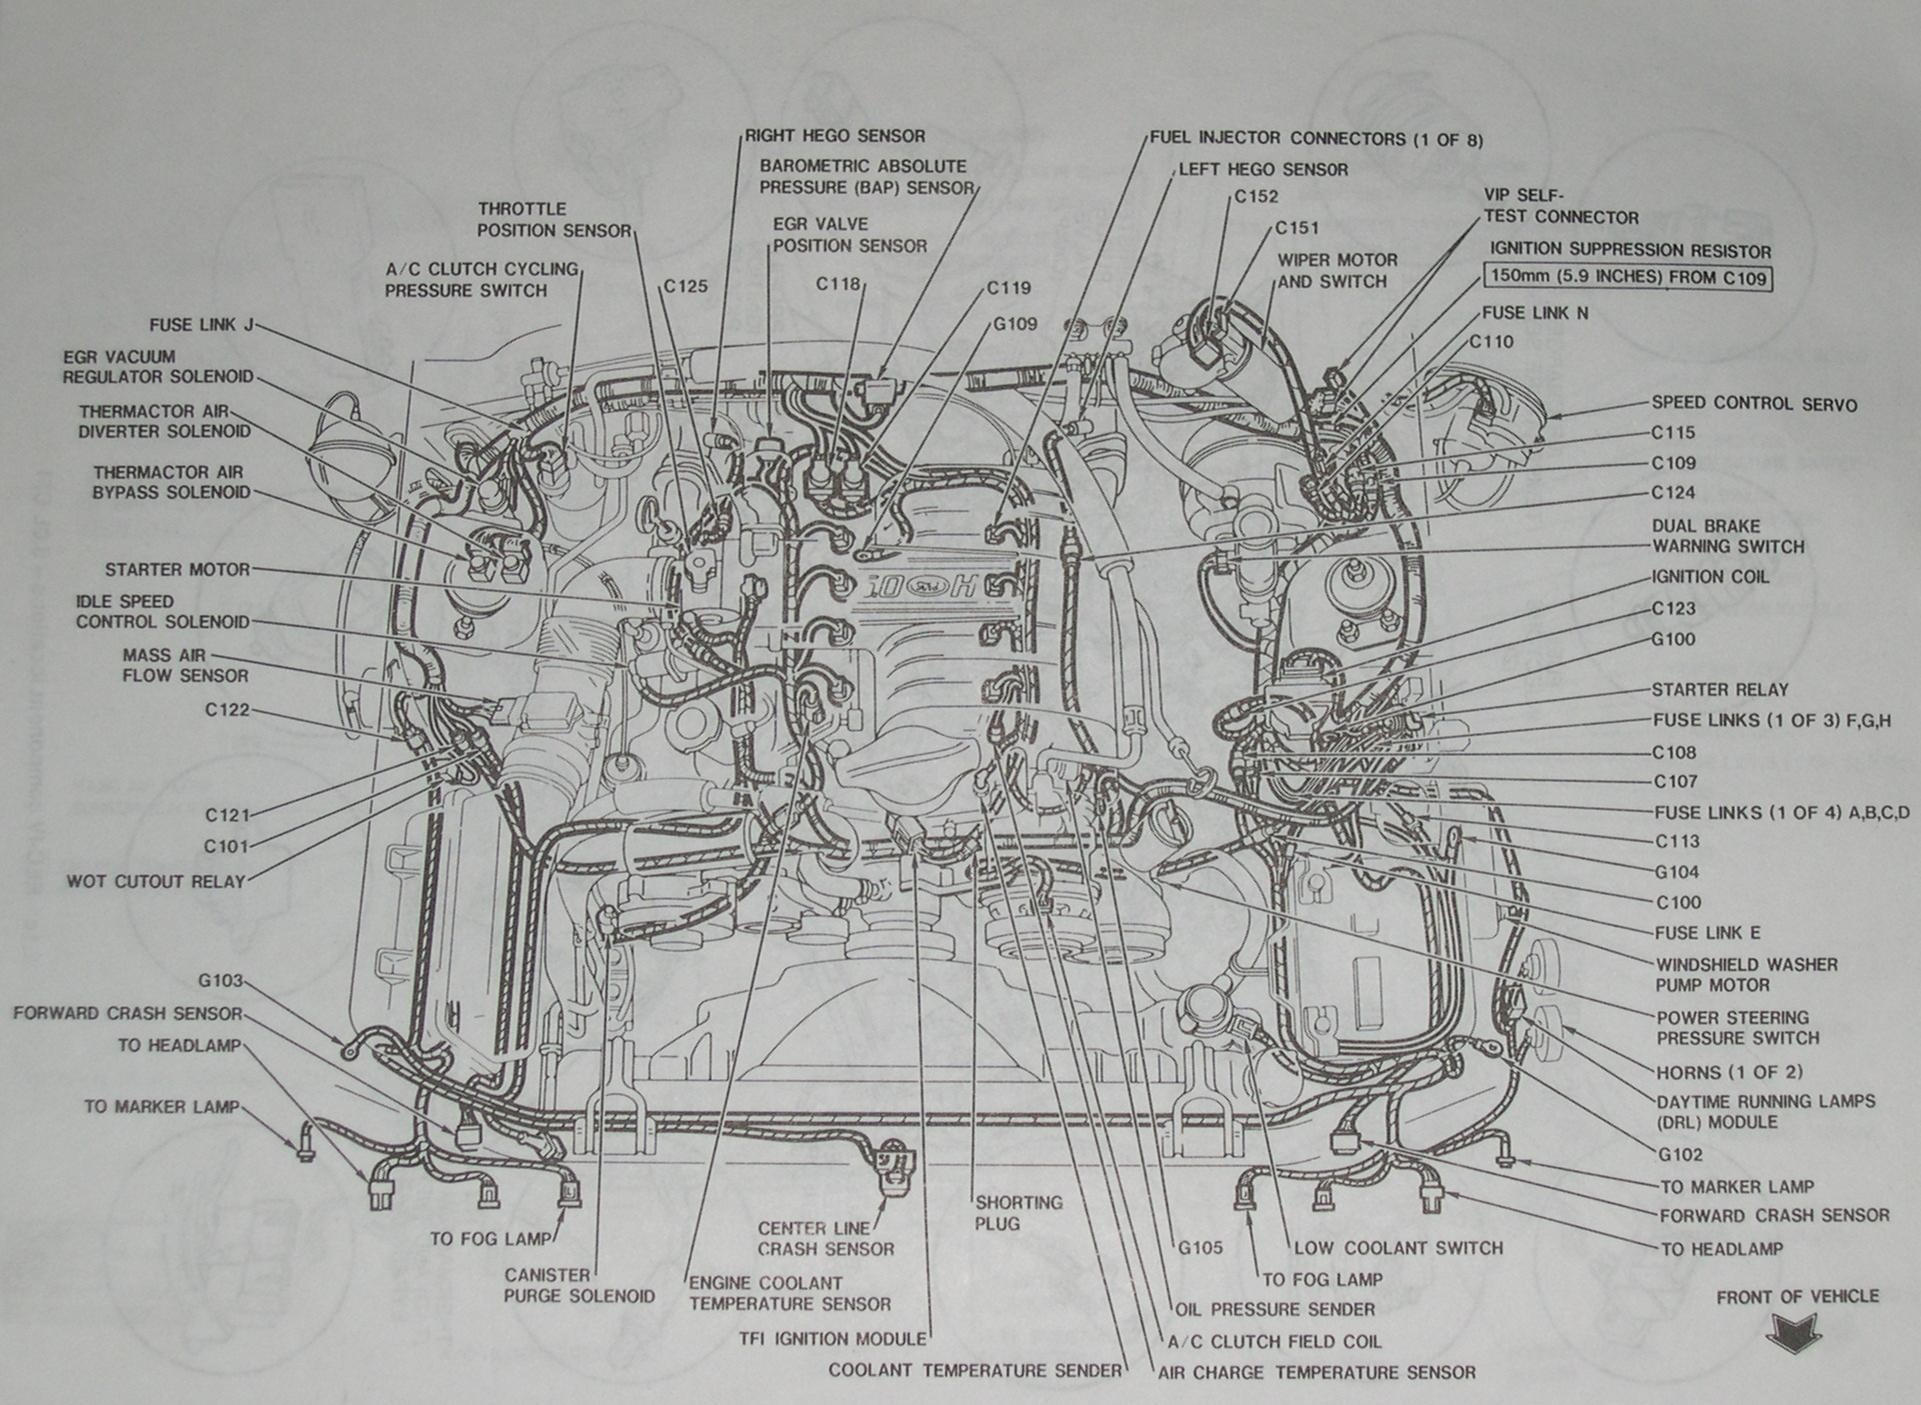 Ford Mustang Engine Diagram 1995 Mustang Gt Clutch Wiring Diagram Data Wiring Diagrams • Of Ford Mustang Engine Diagram